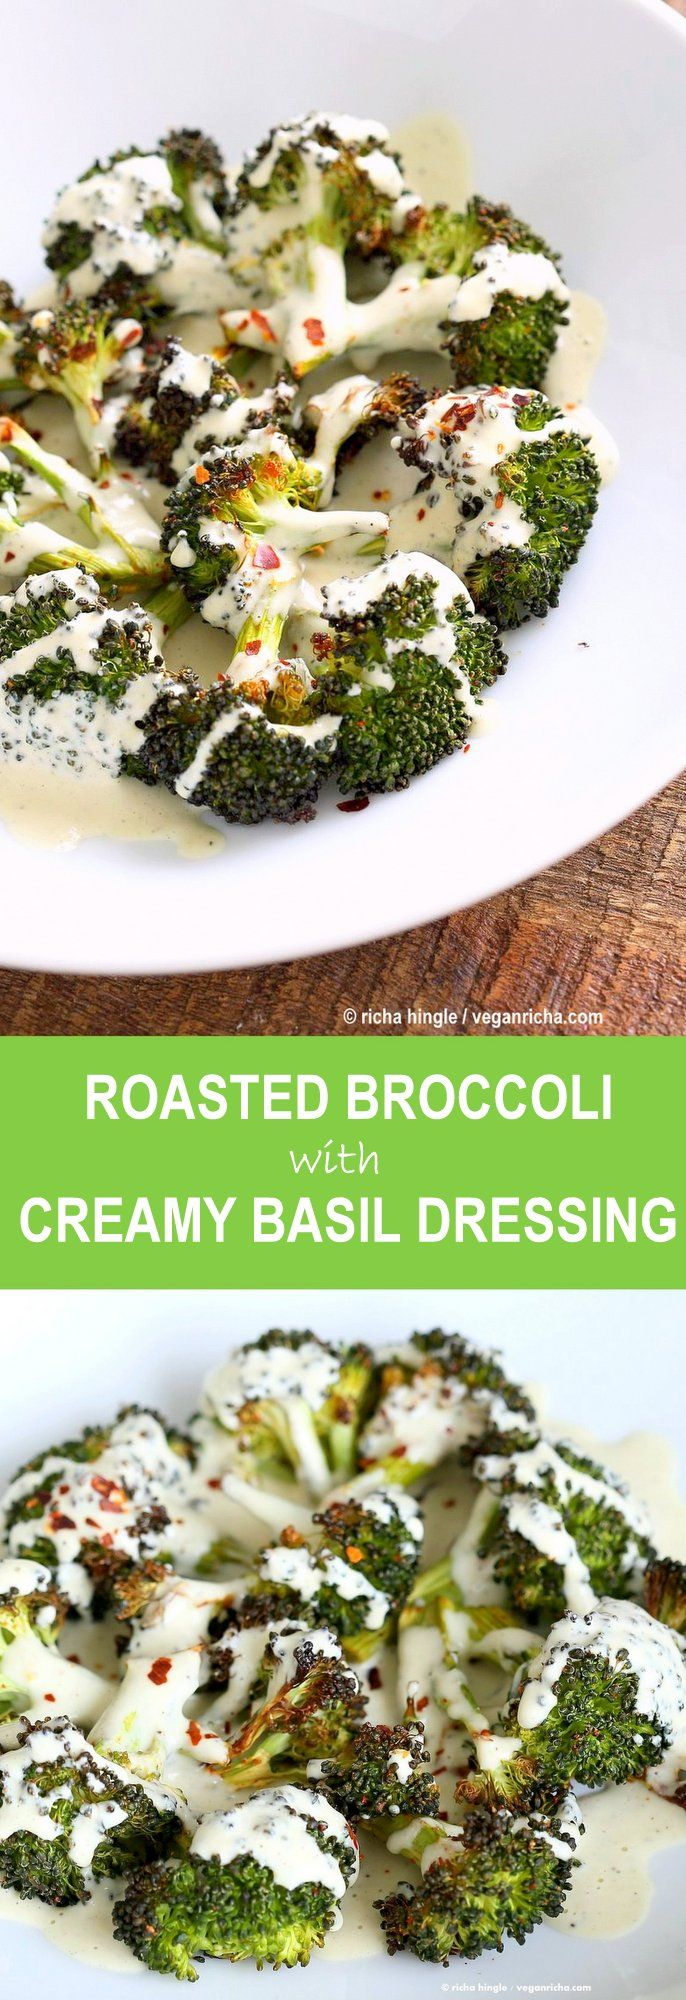 Roasted Broccoli with Creamy Basil Dressing. Broccoli tossed in garlic, cayenne, and baked. Served with cheesy cashew basil sauce. Vegan Gluten-free soy-free Recipe | VeganRicha.com